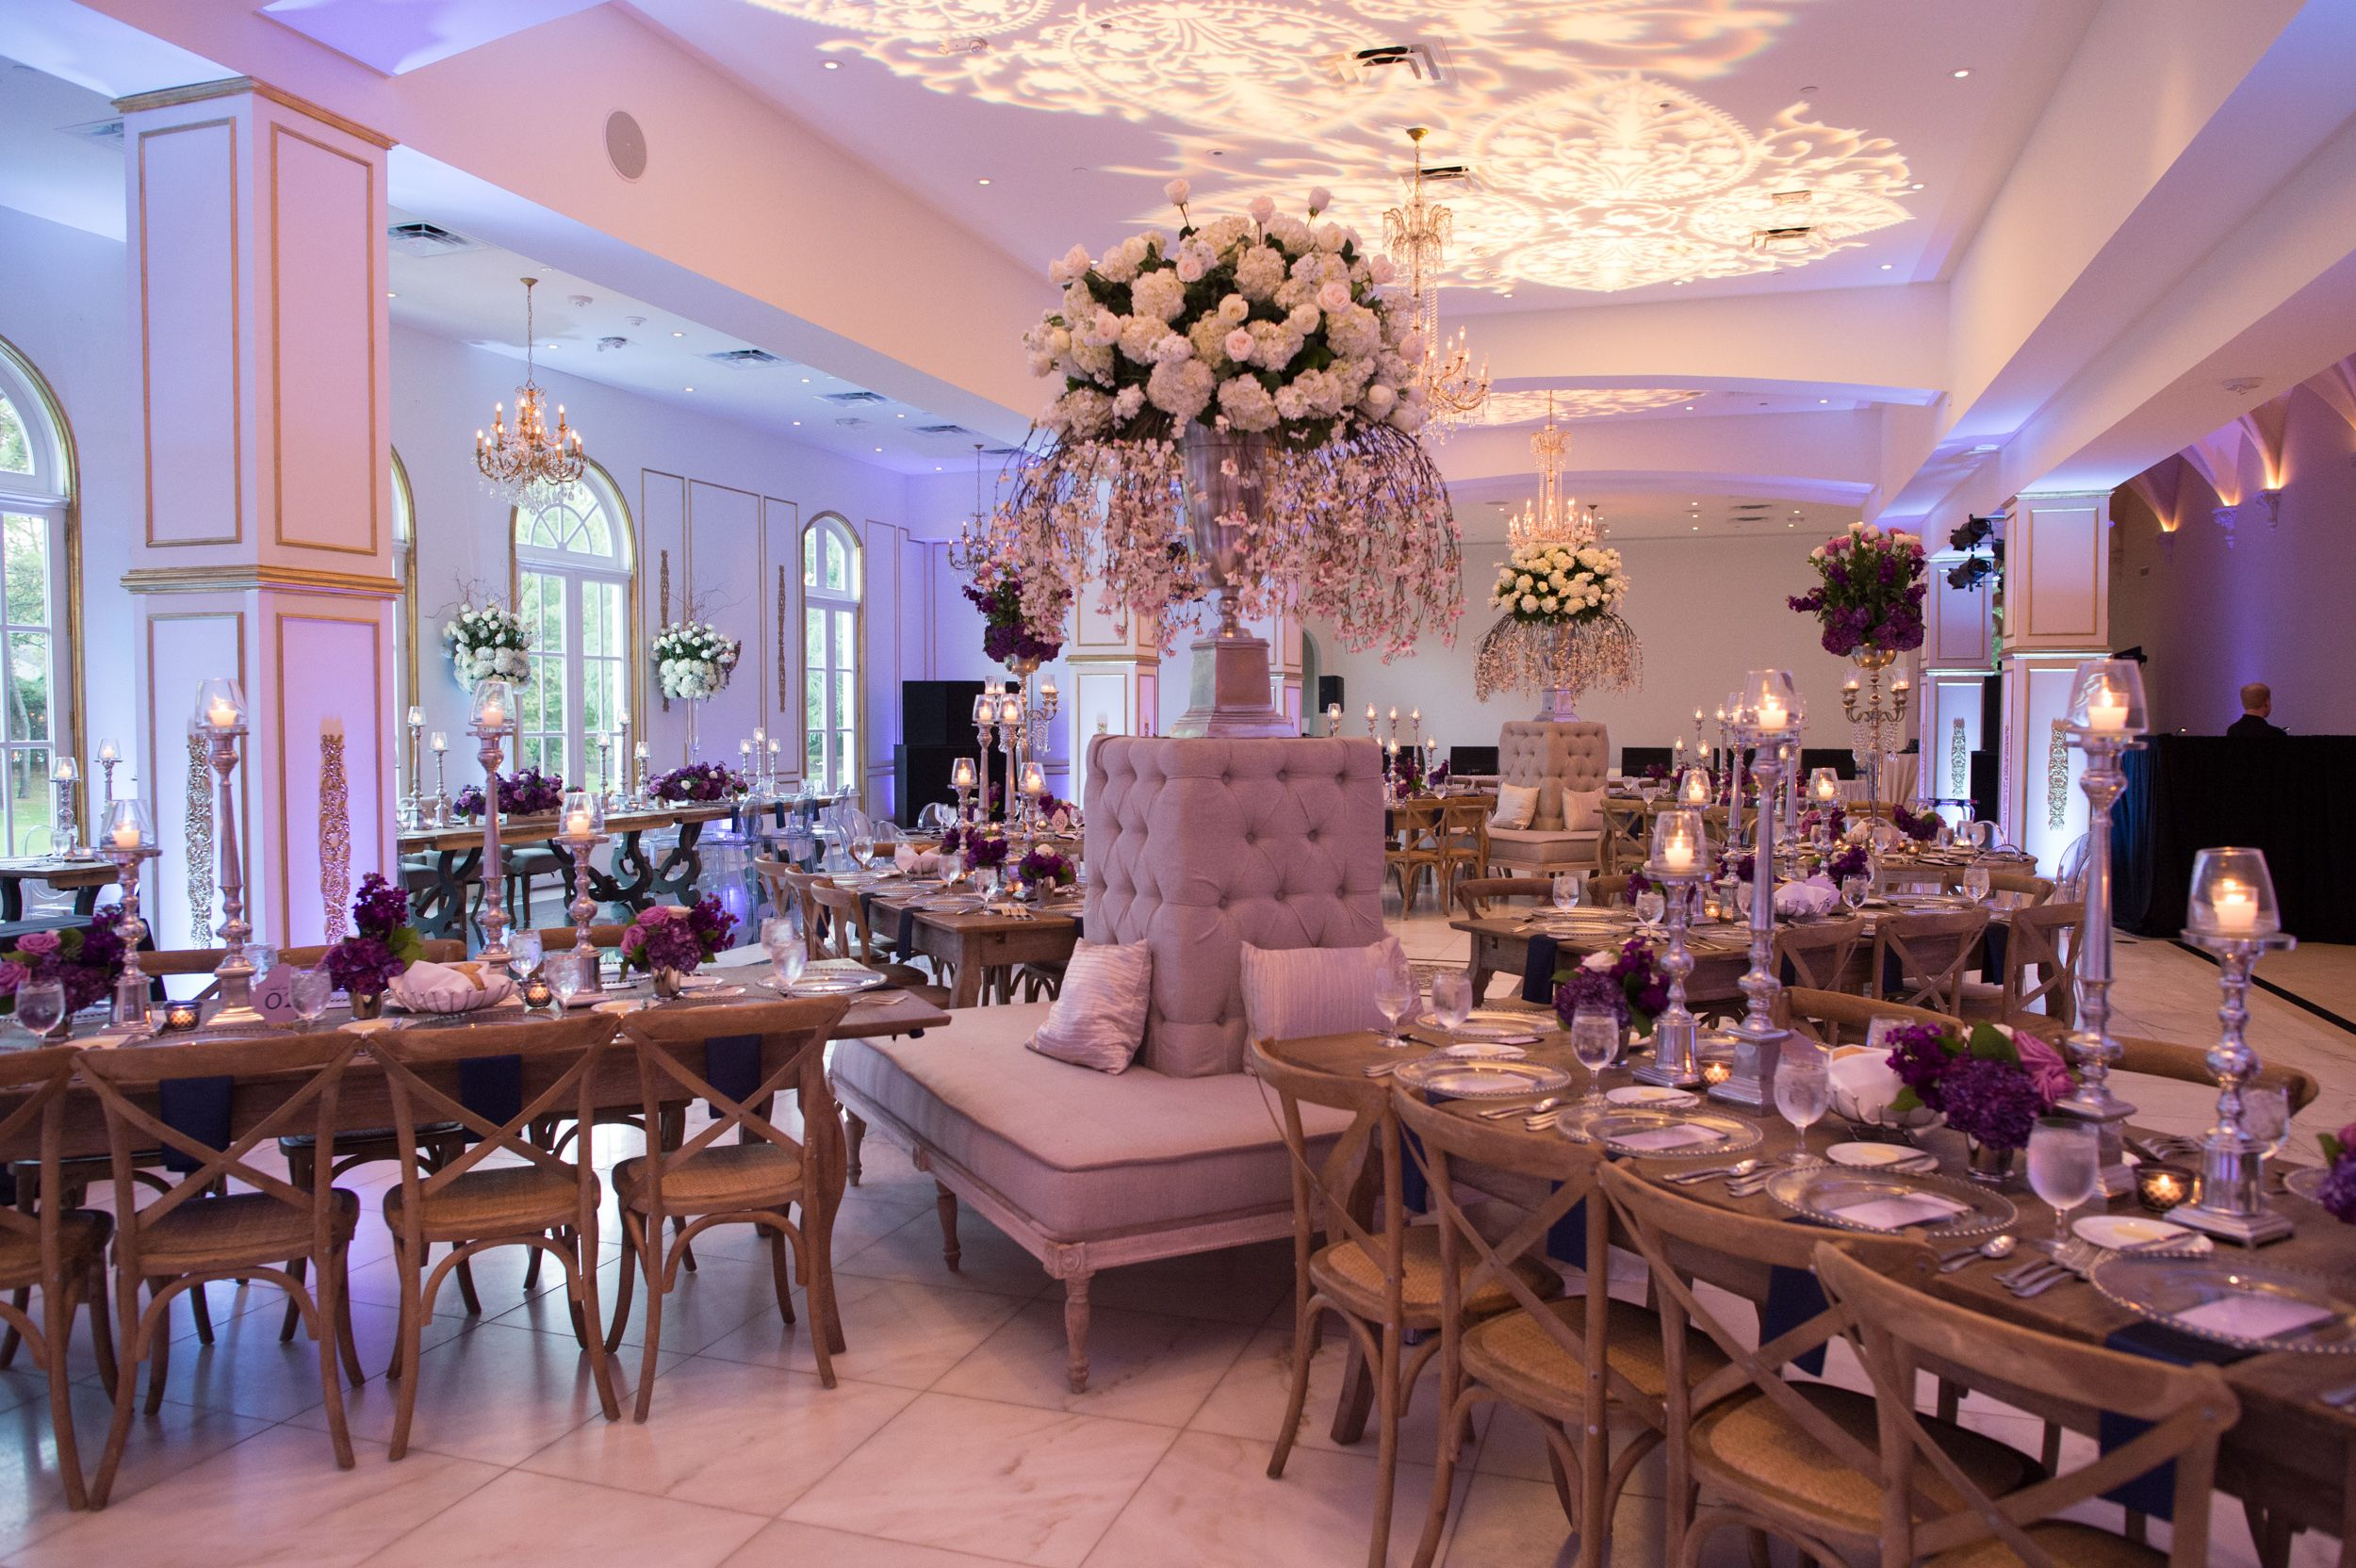 Ballroom transformation for this over the top rustic wedding